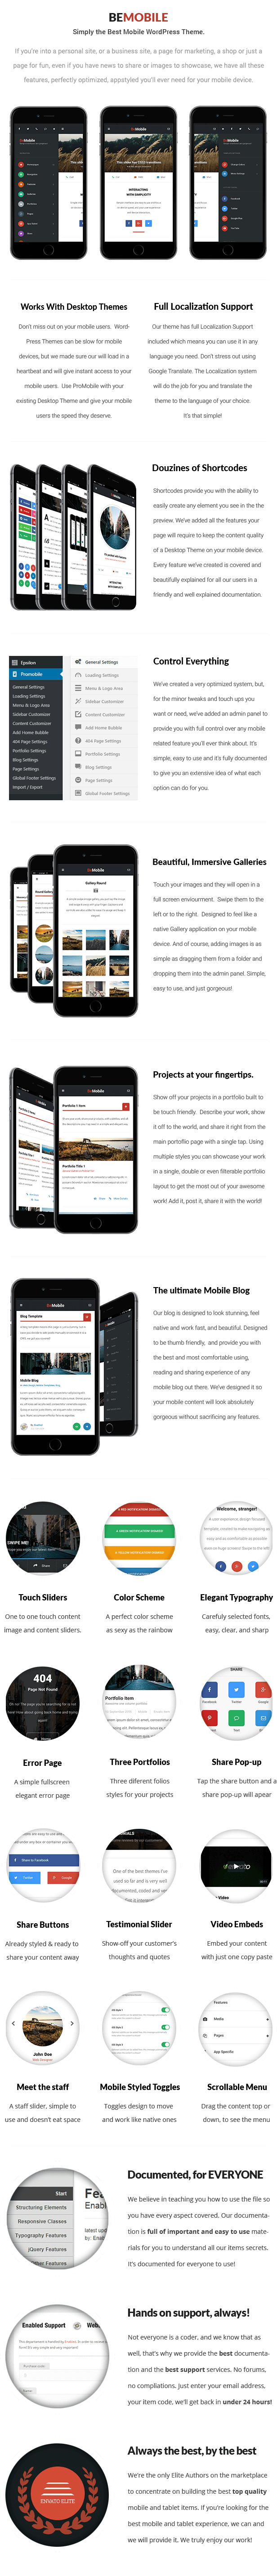 Be Mobile Theme | Mobile WordPress Theme (WooCommerce Ready) - 9